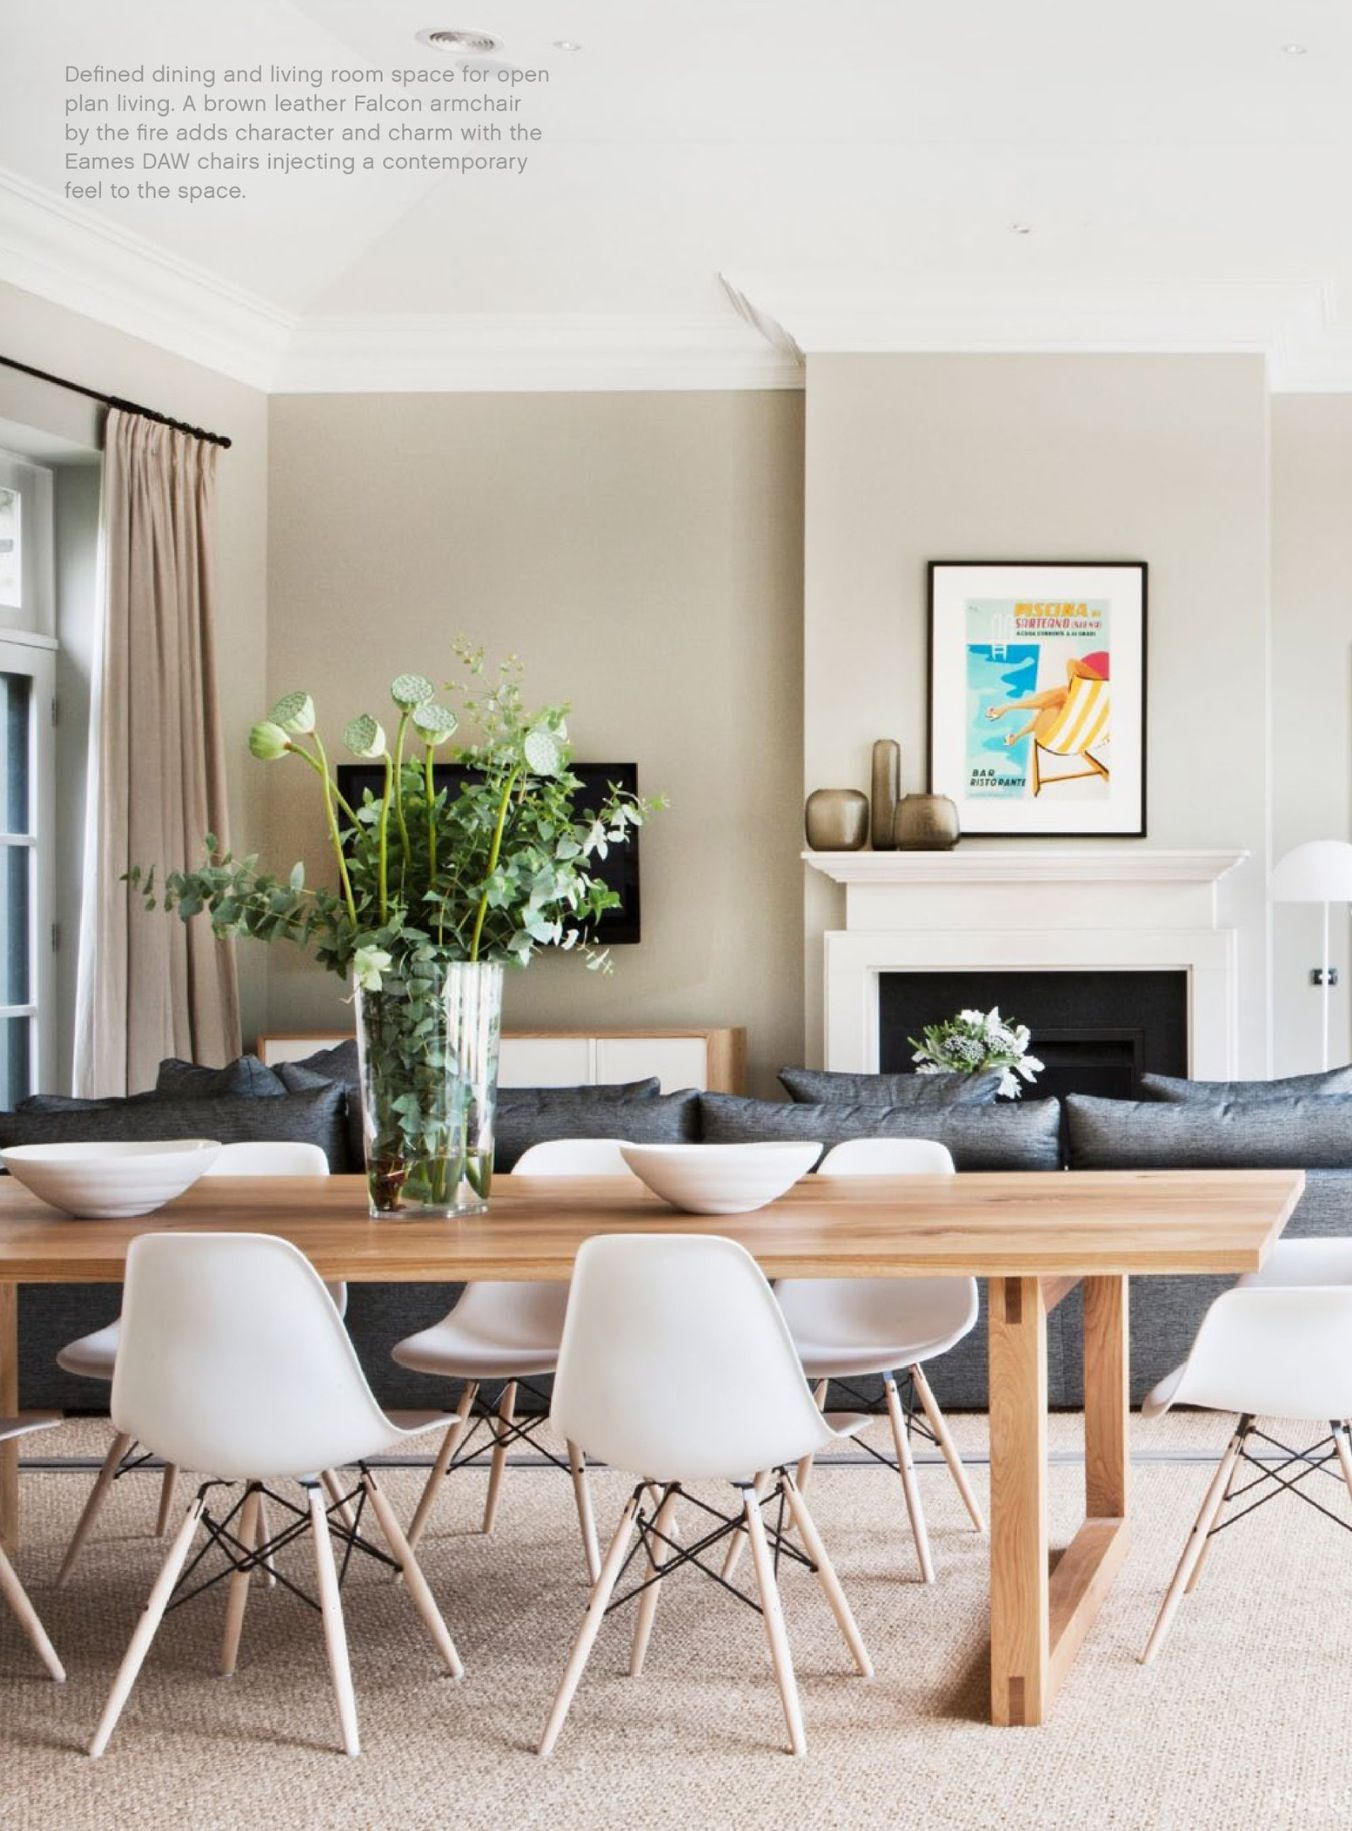 Est Magazine 6 Eames dining chair, Eames dining